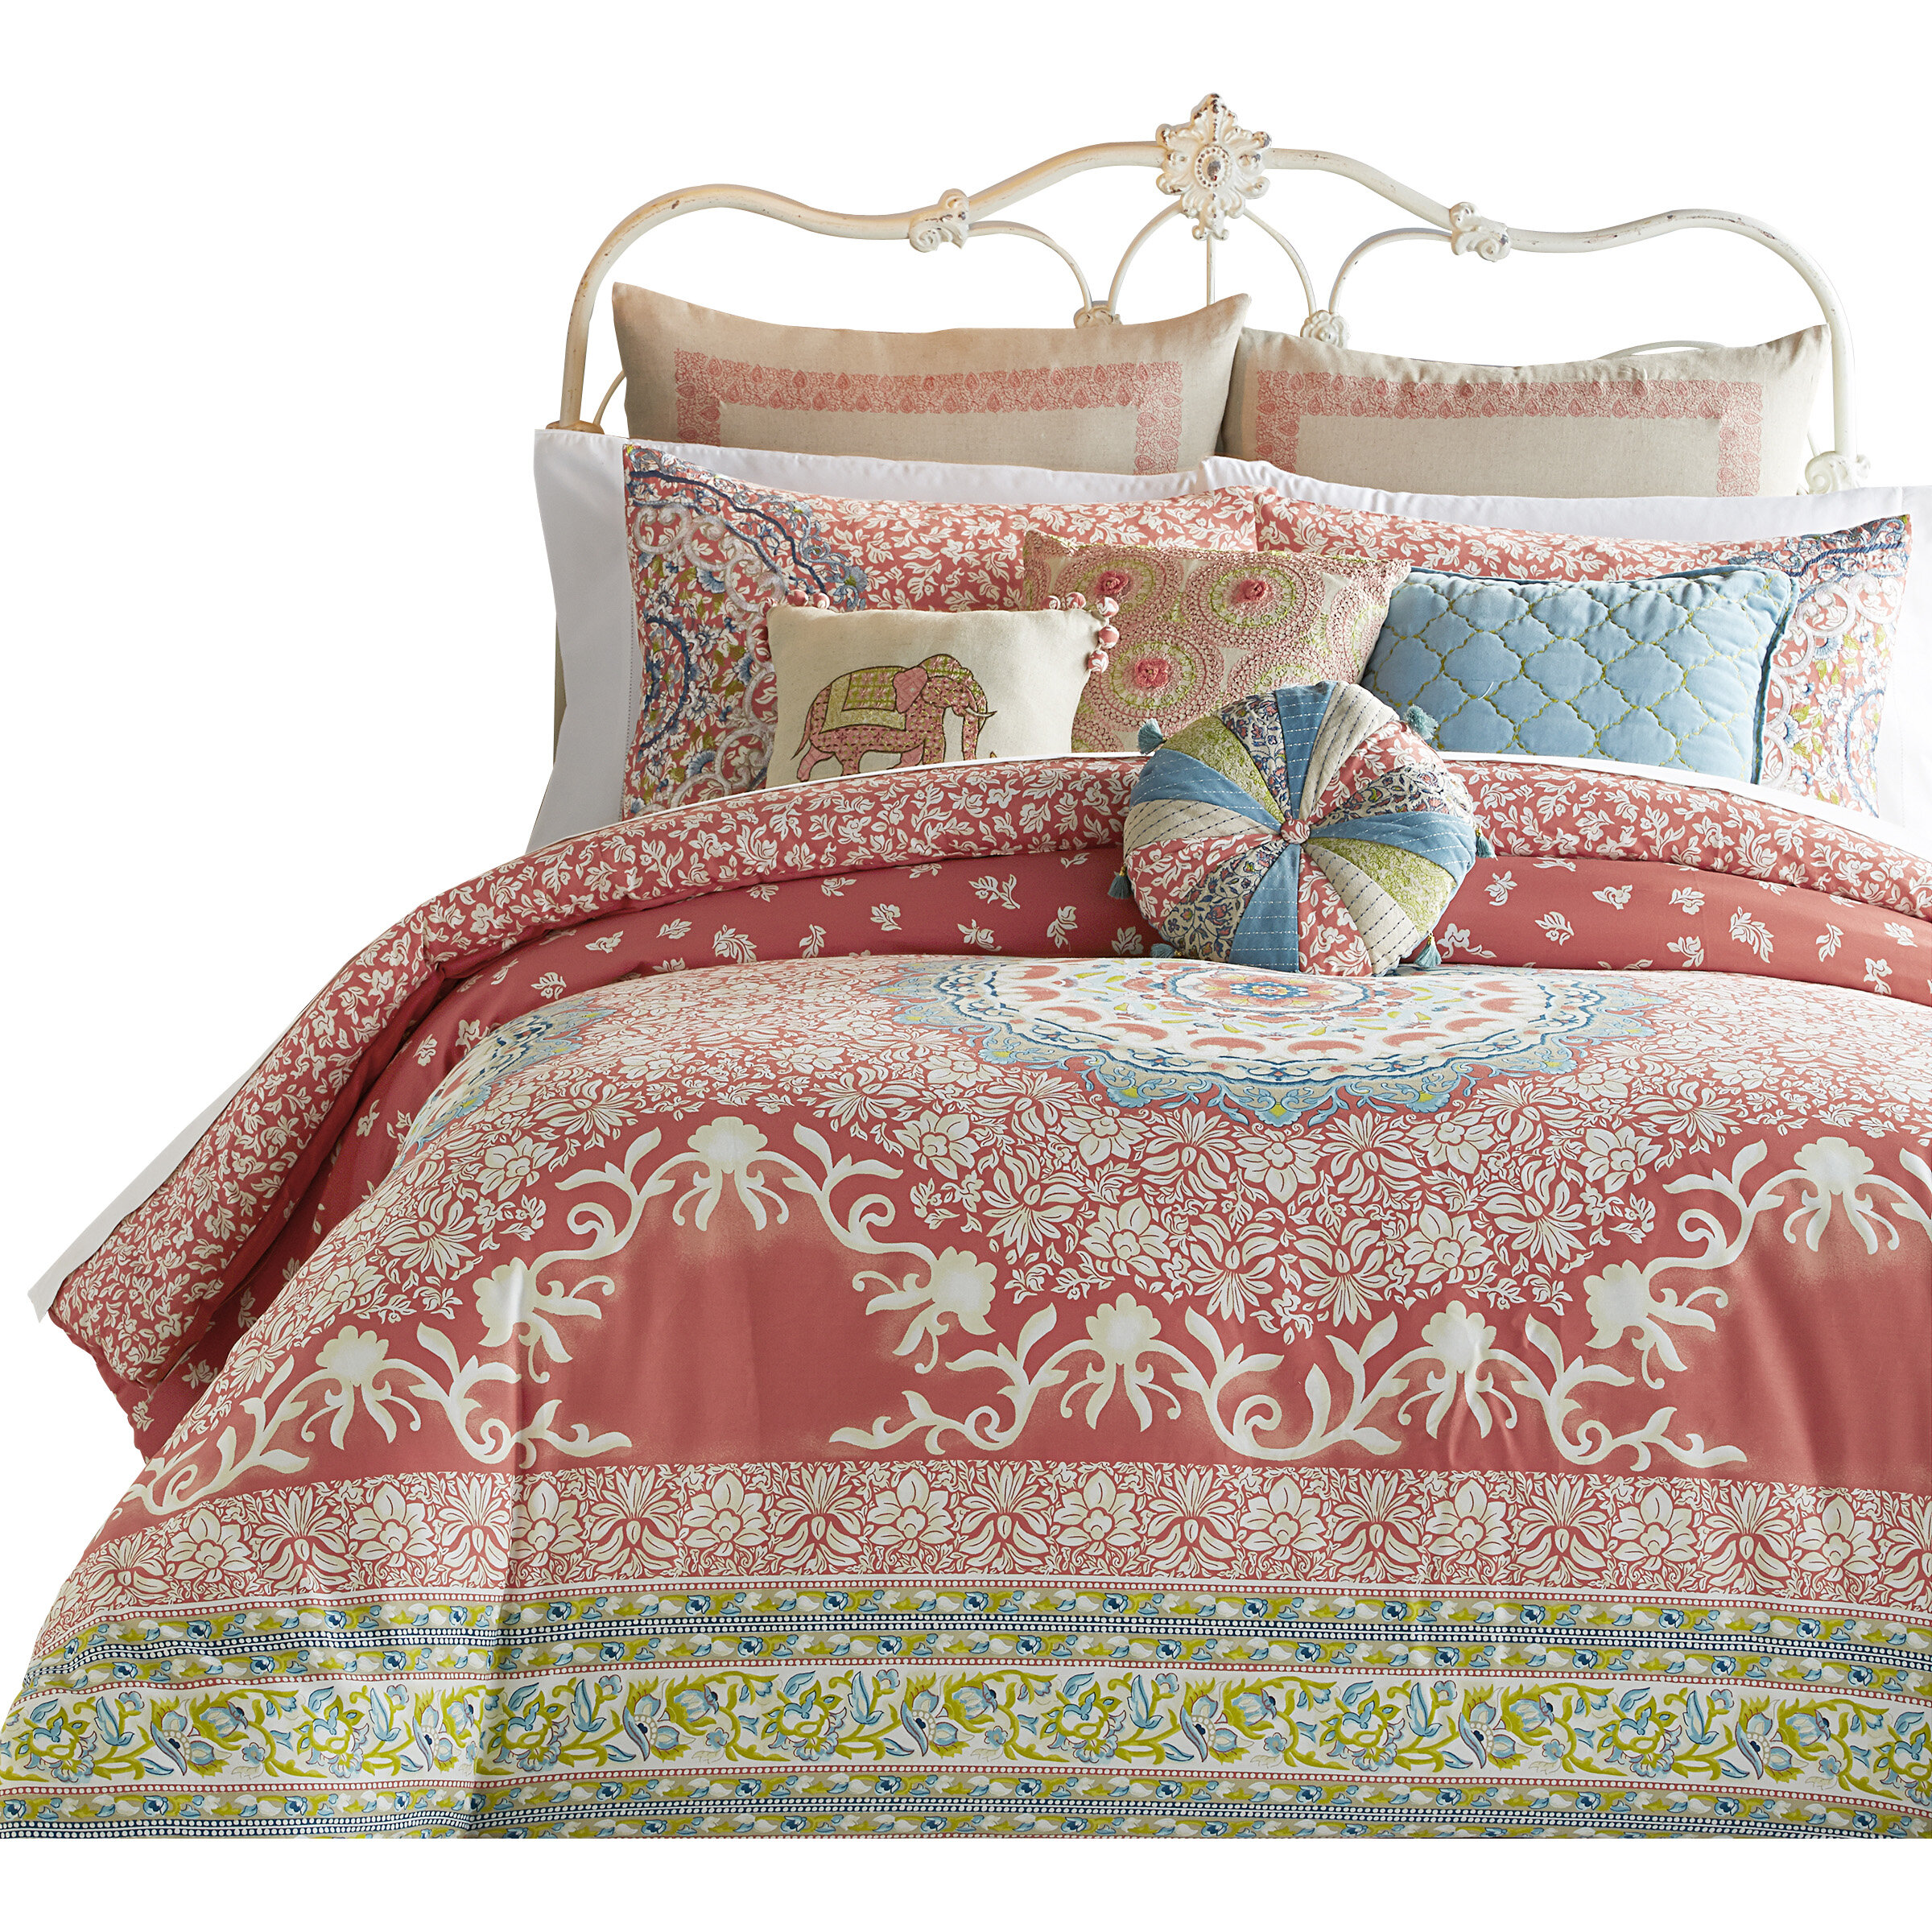 on comter cheap under full macys size target comforter sale king sets queen clearance cotton